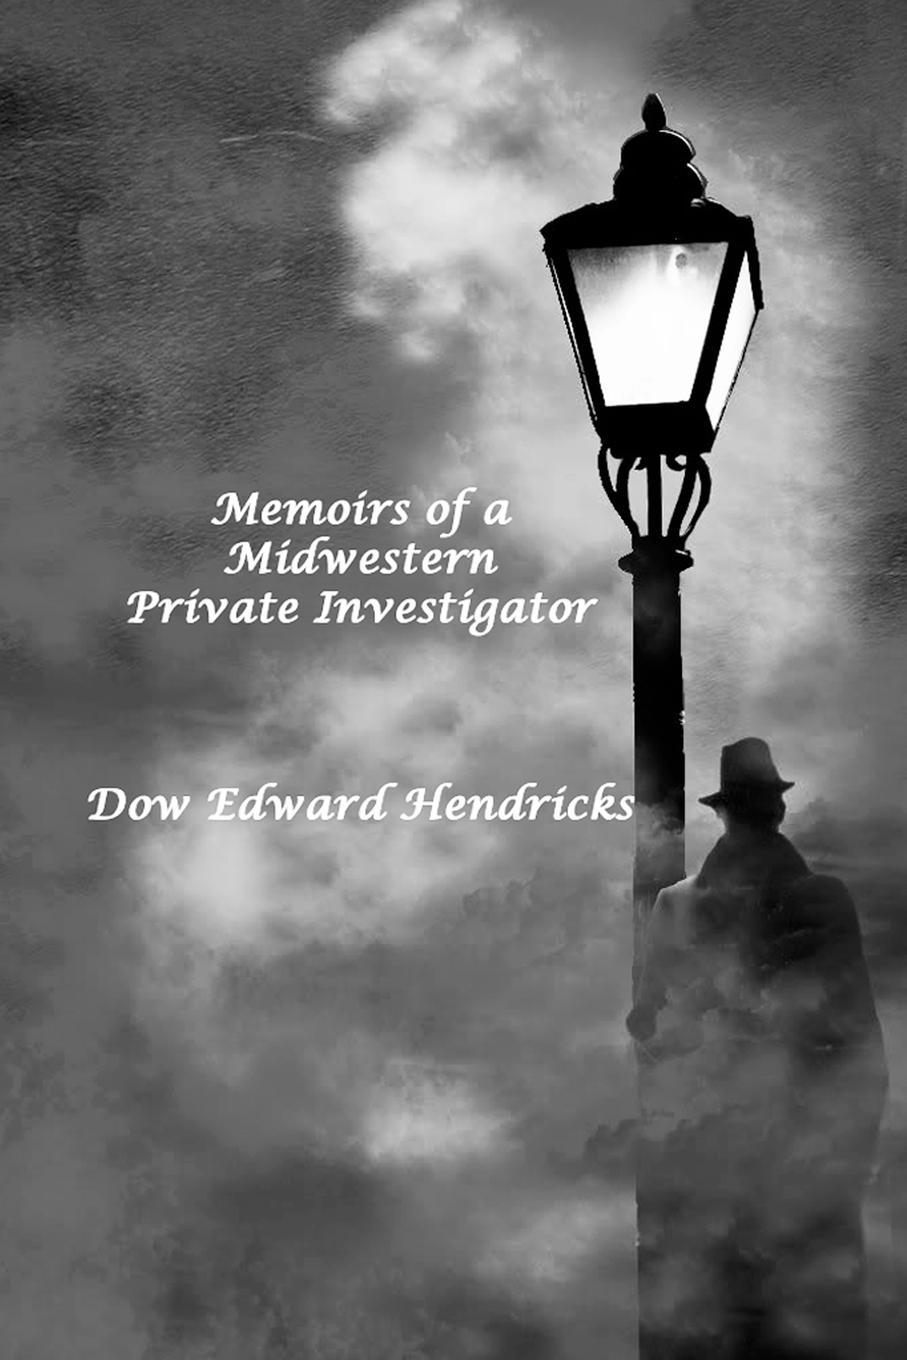 Dow Edward Hendricks Memoirs of a Midwestern Private Investigator jennifer keeler michelle jones private investigator